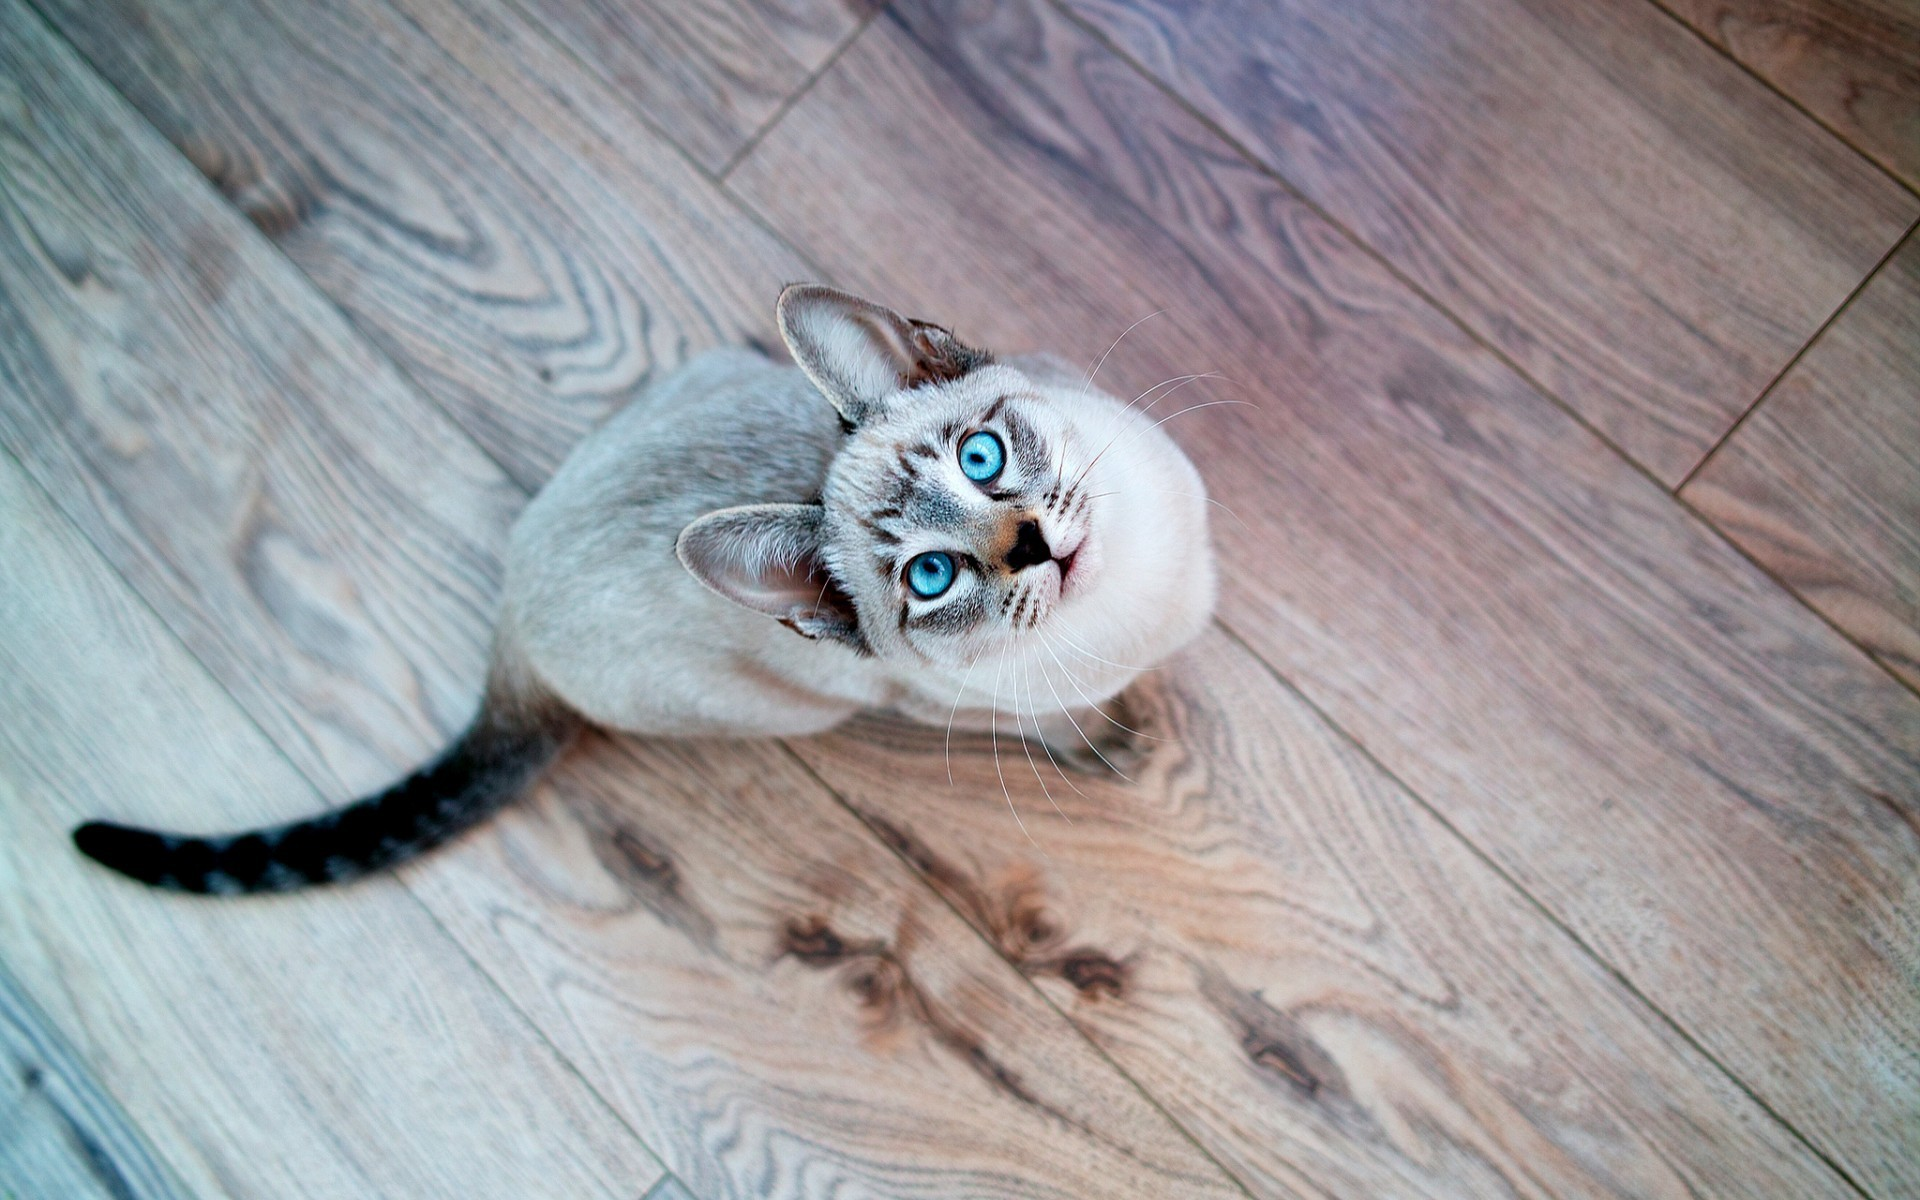 animals wooden surface blue eyes looking up cats